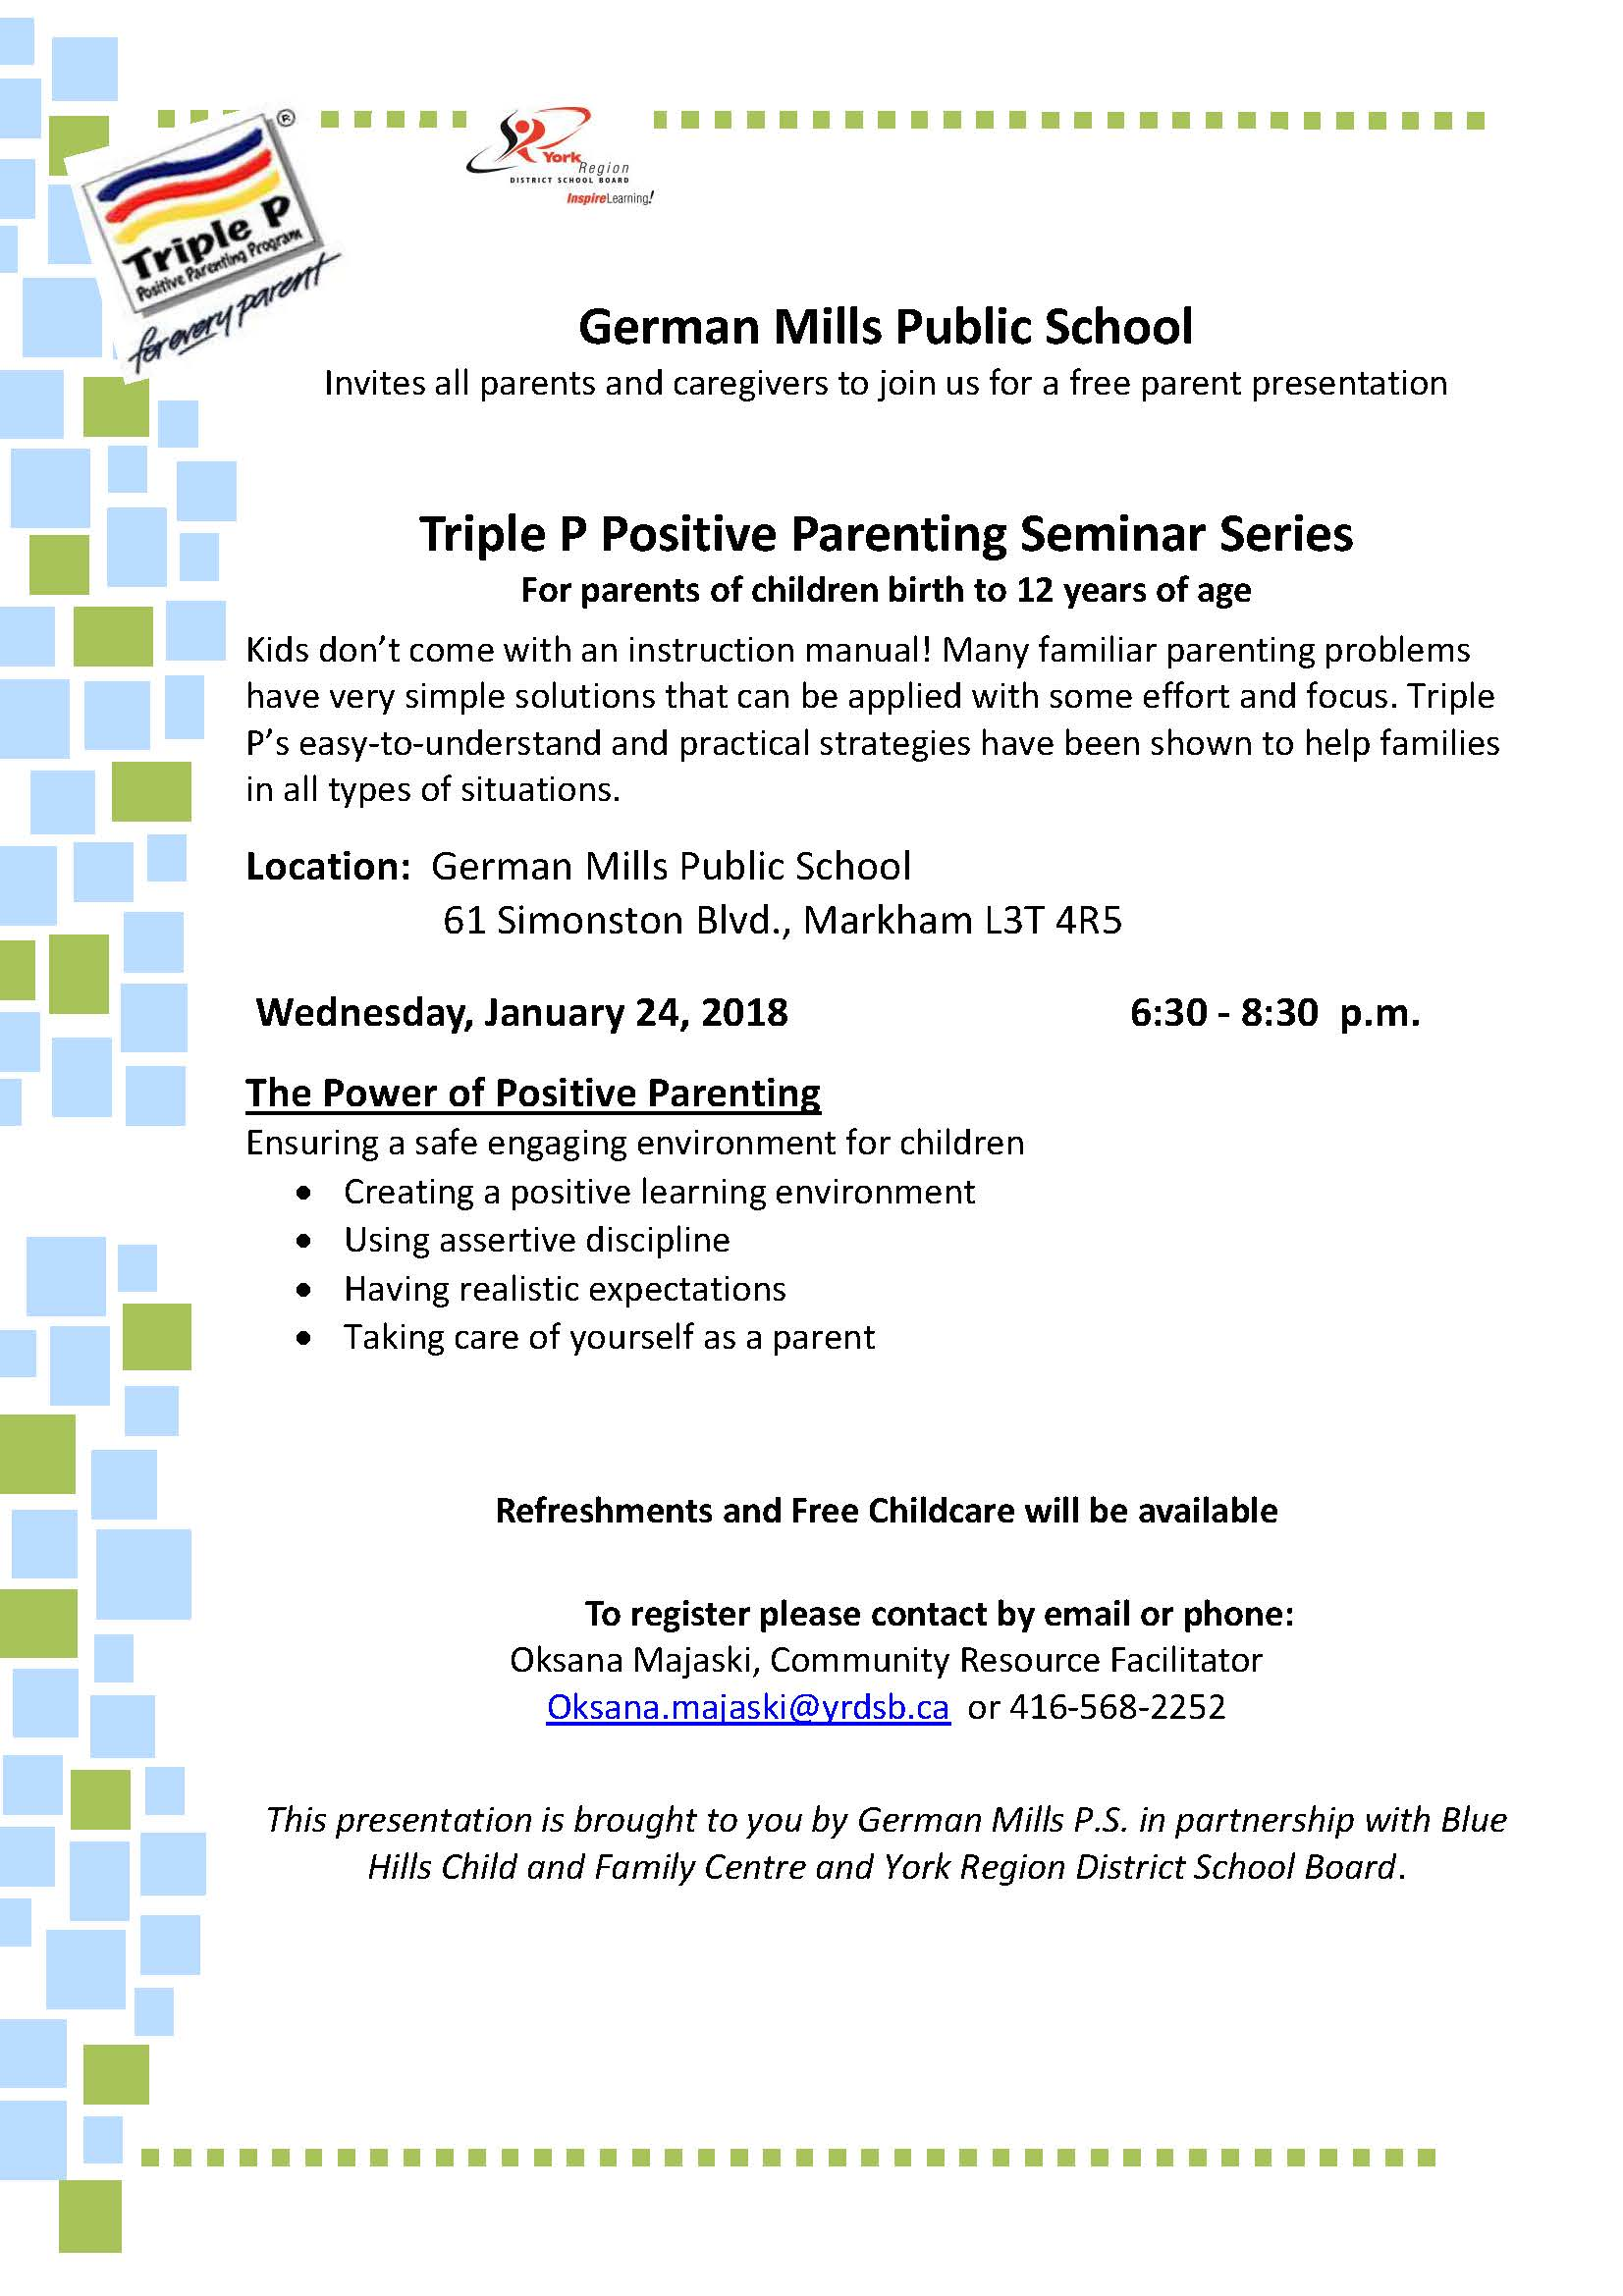 Power of Positive Parenting Jan24 2018 @ German Mills PS